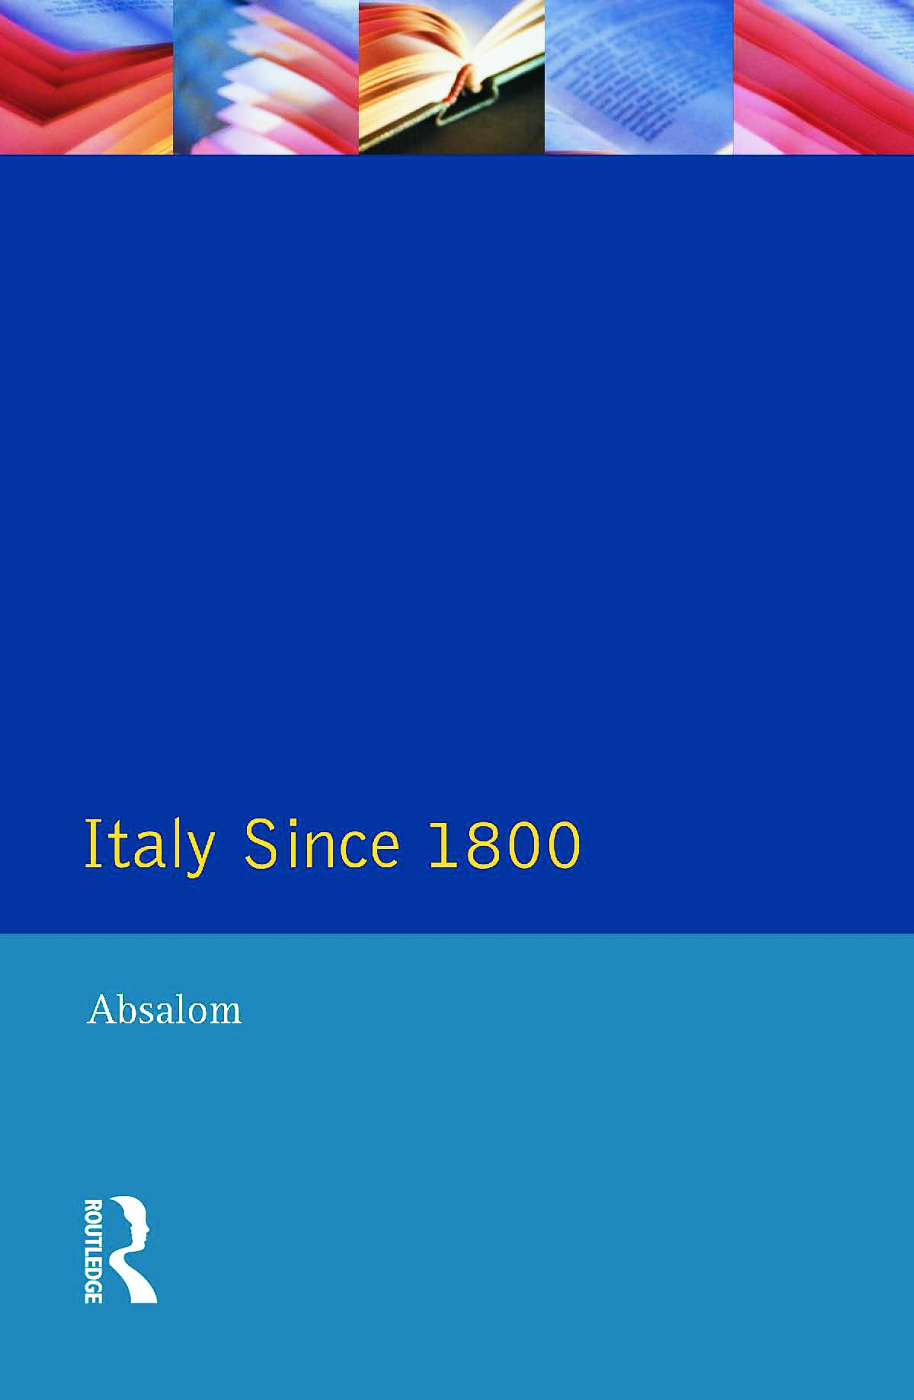 Italy Since 1800: A Nation in the Balance? book cover